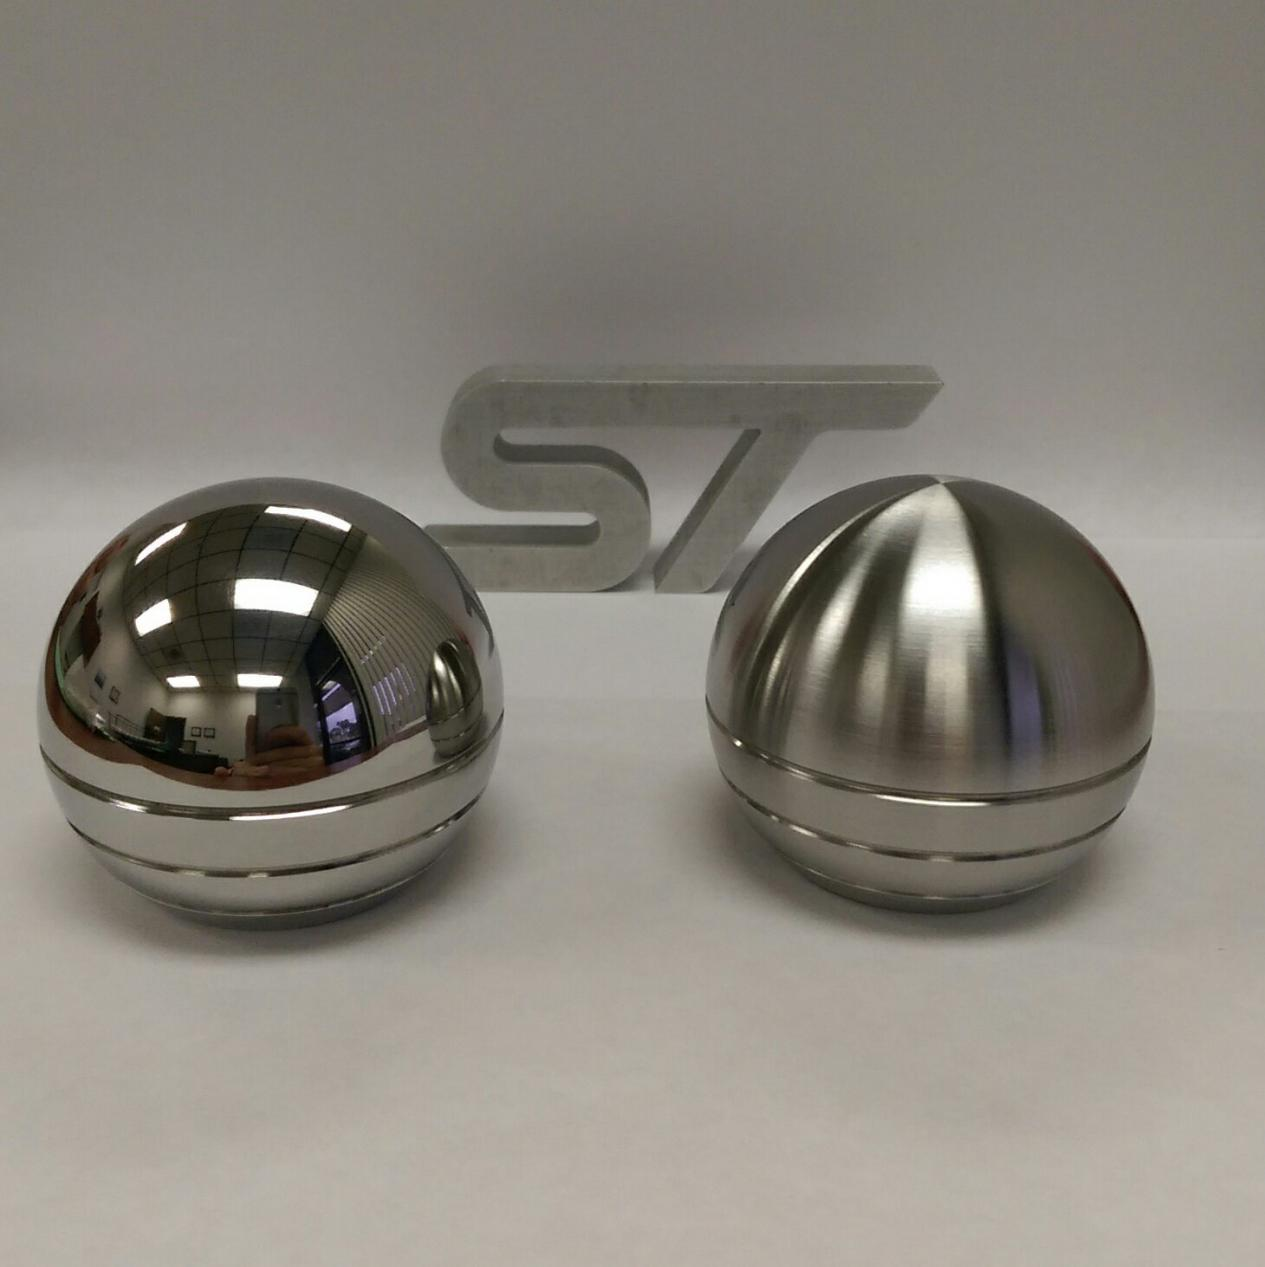 Stainless Steel Ball Shift Knob NO COLLAR Now Available! - Boosted Designs-imag1229_1.jpg